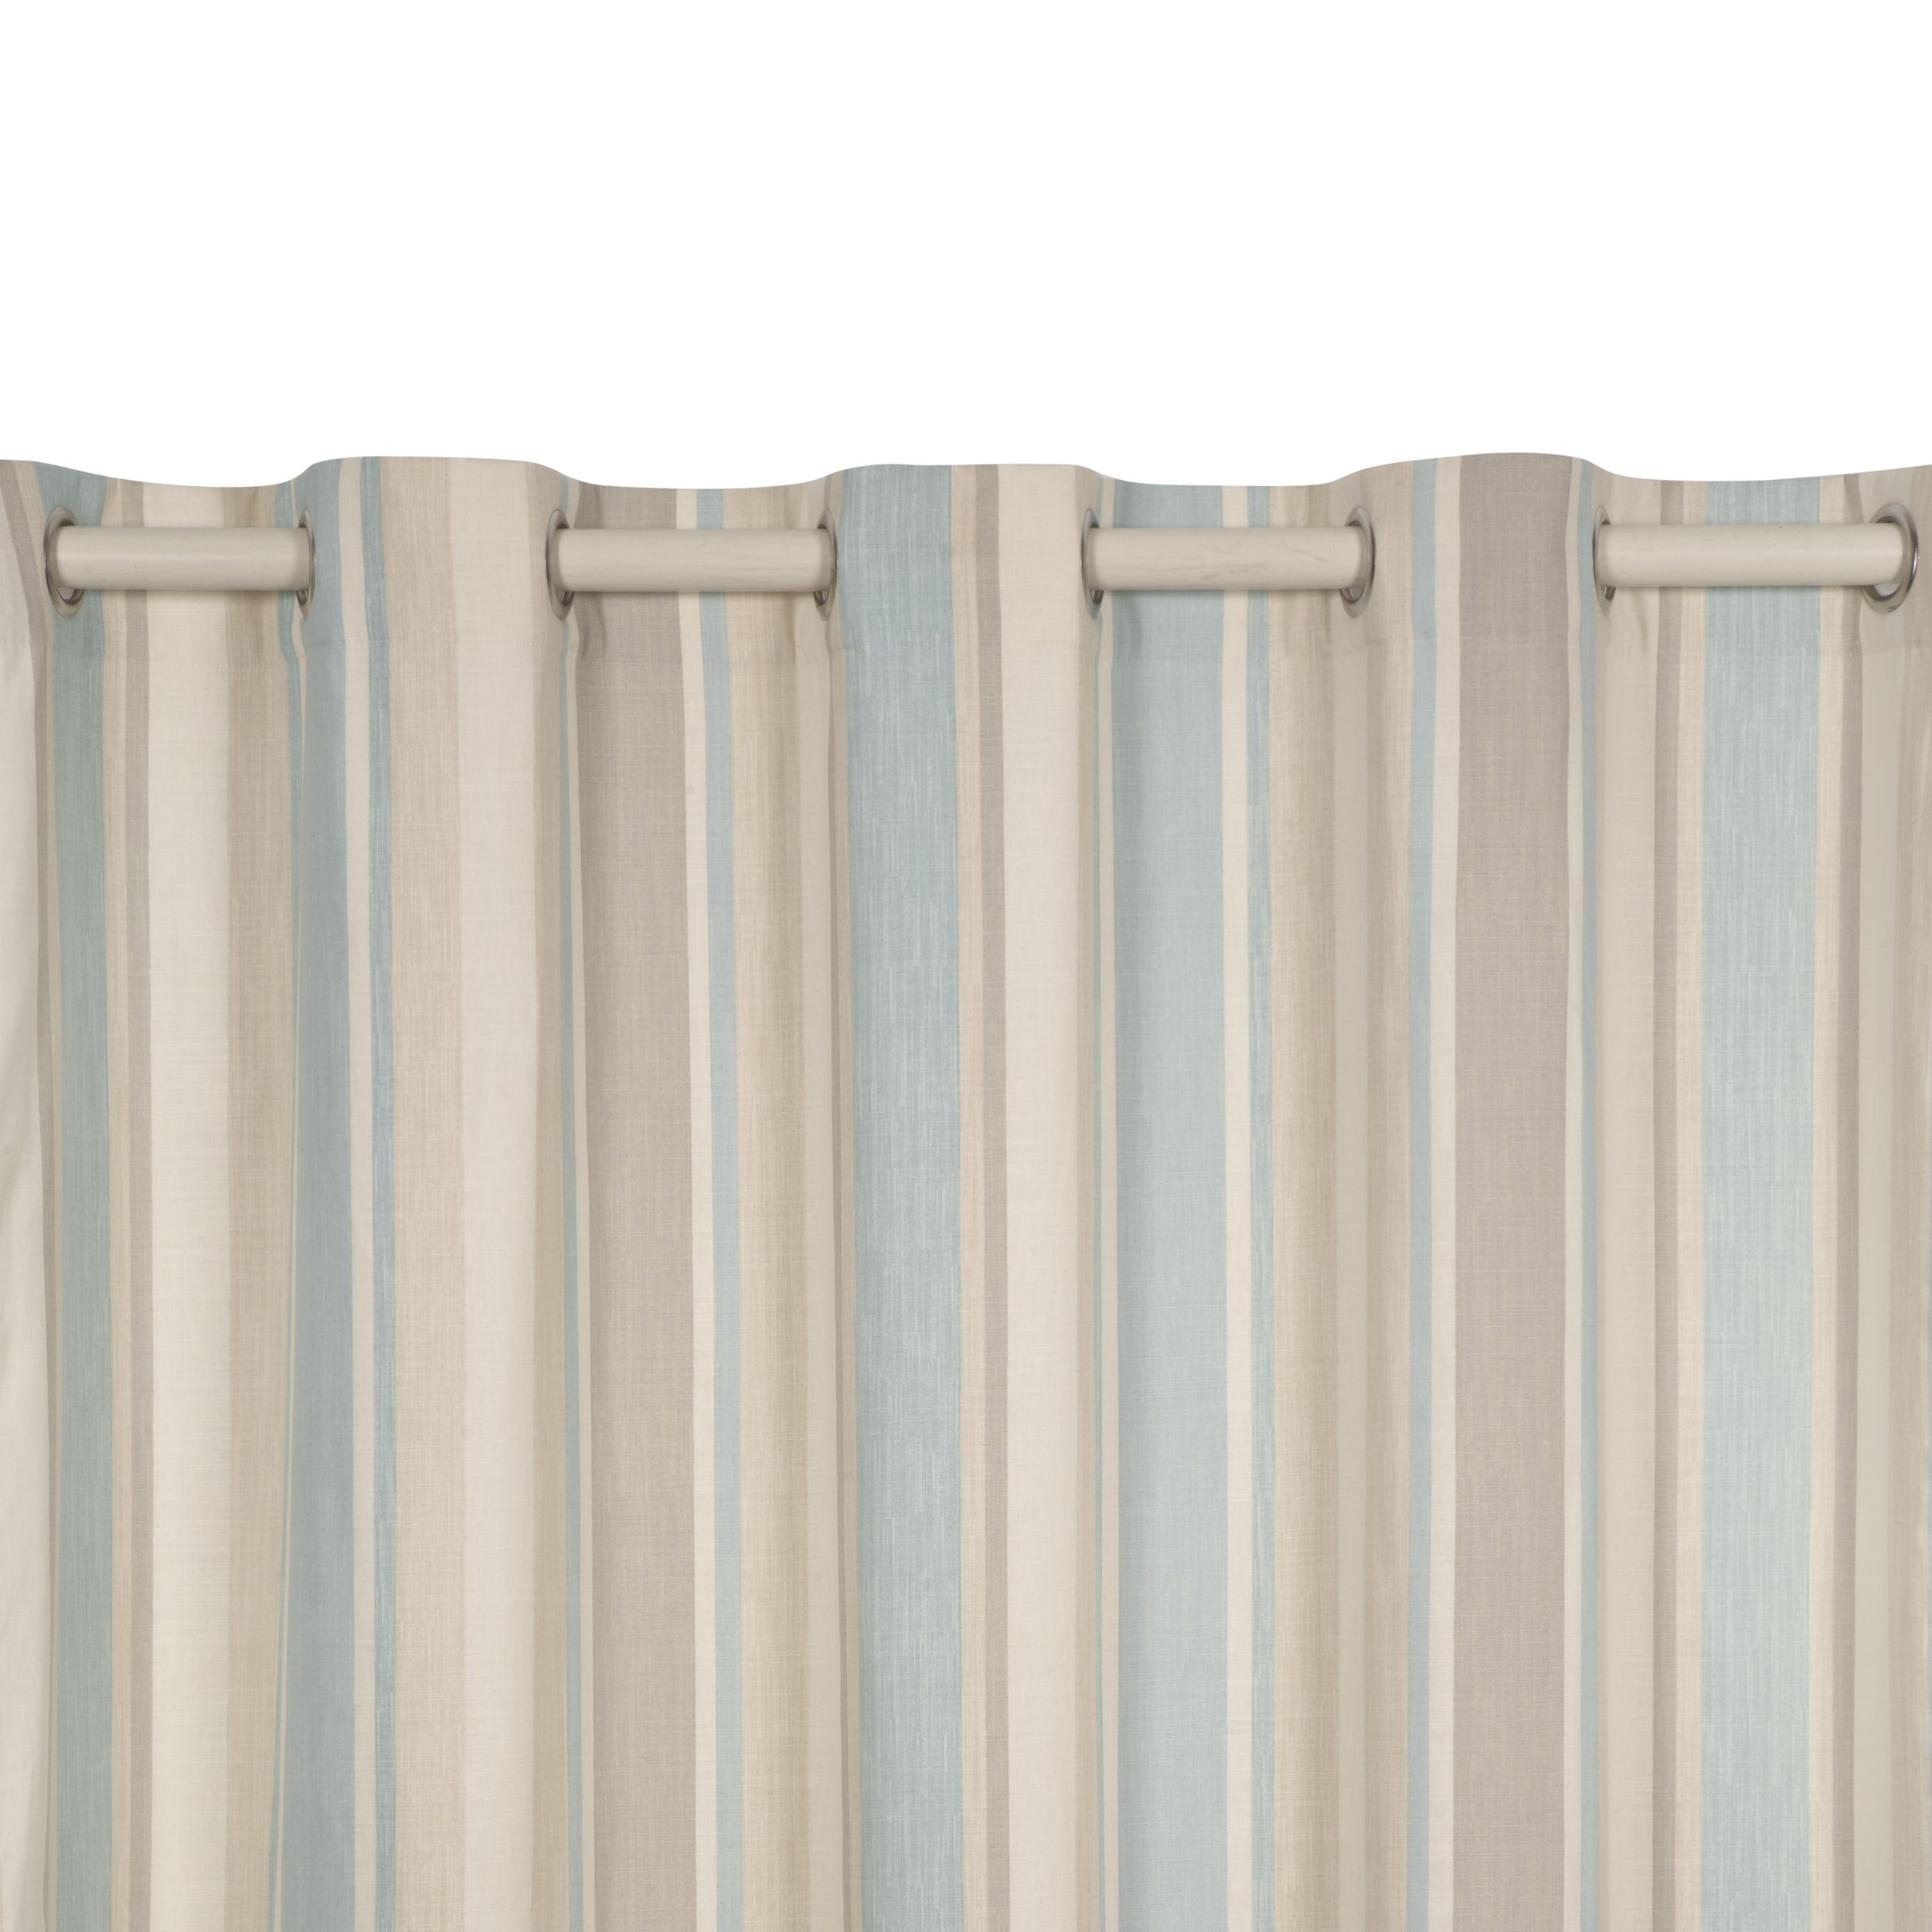 Awning Stripe Eyelet Ready Made Curtains £175